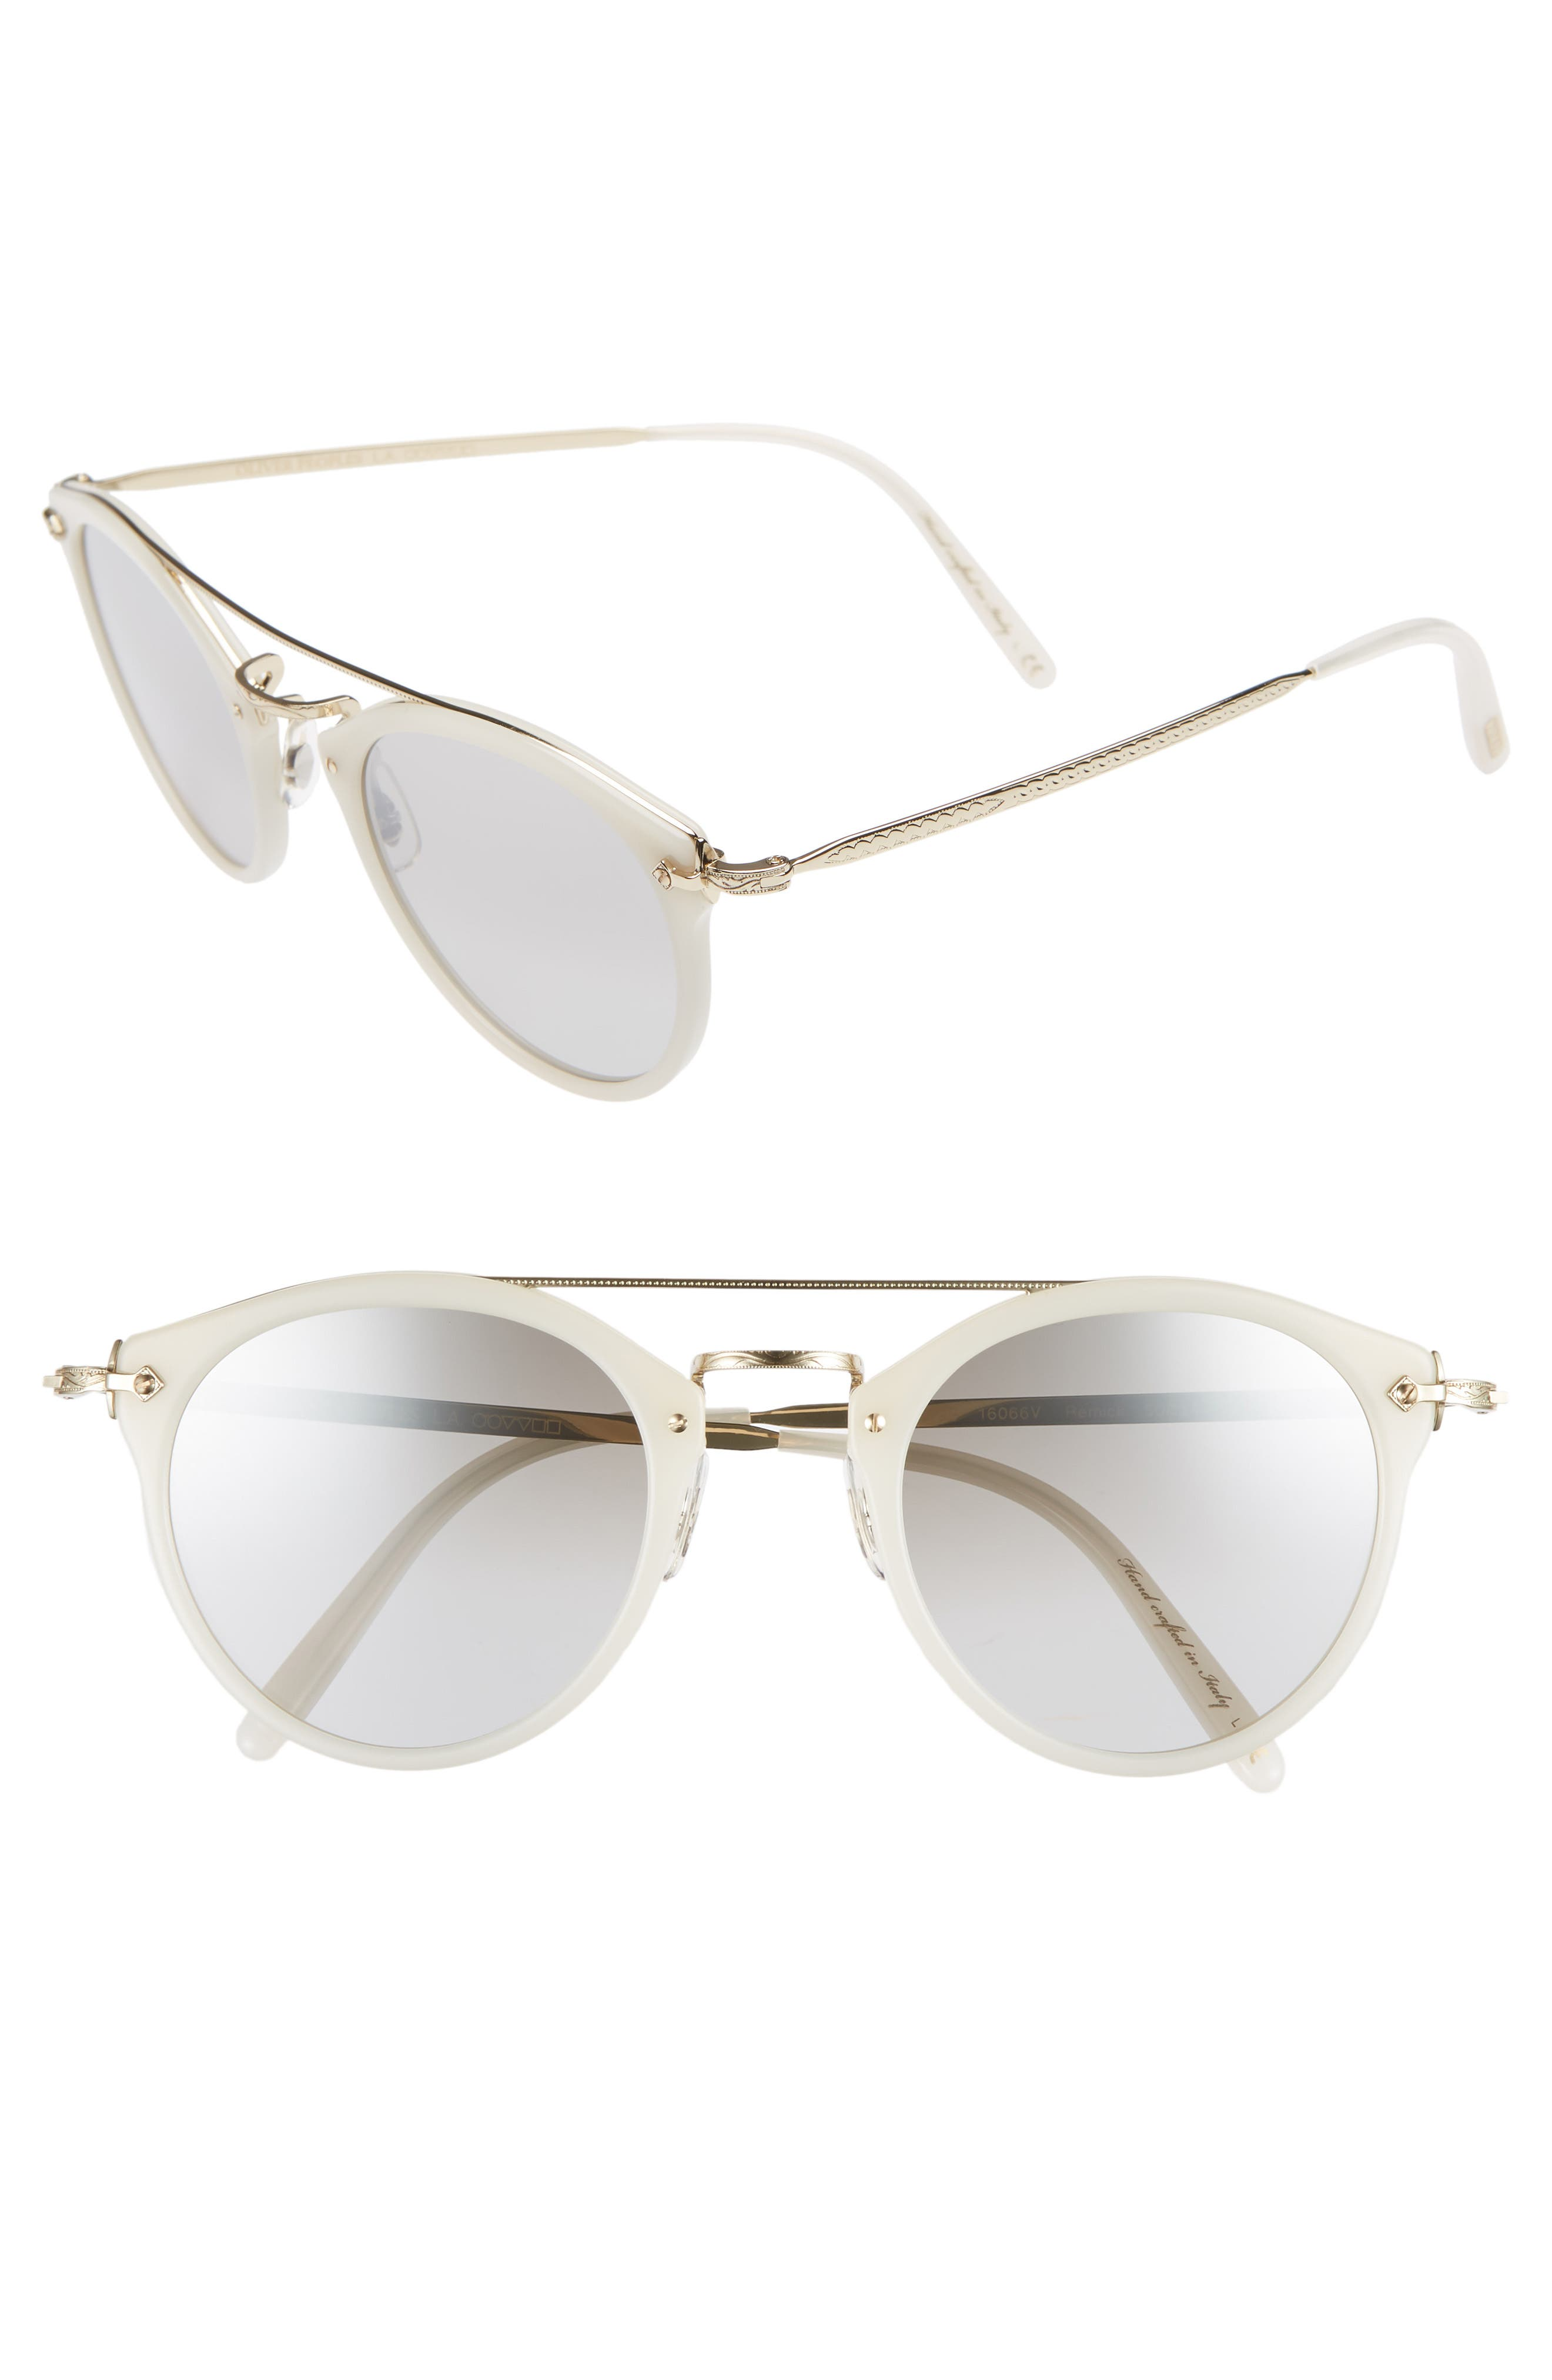 Oliver Peoples Remick 50Mm Brow Bar Sunglasses -